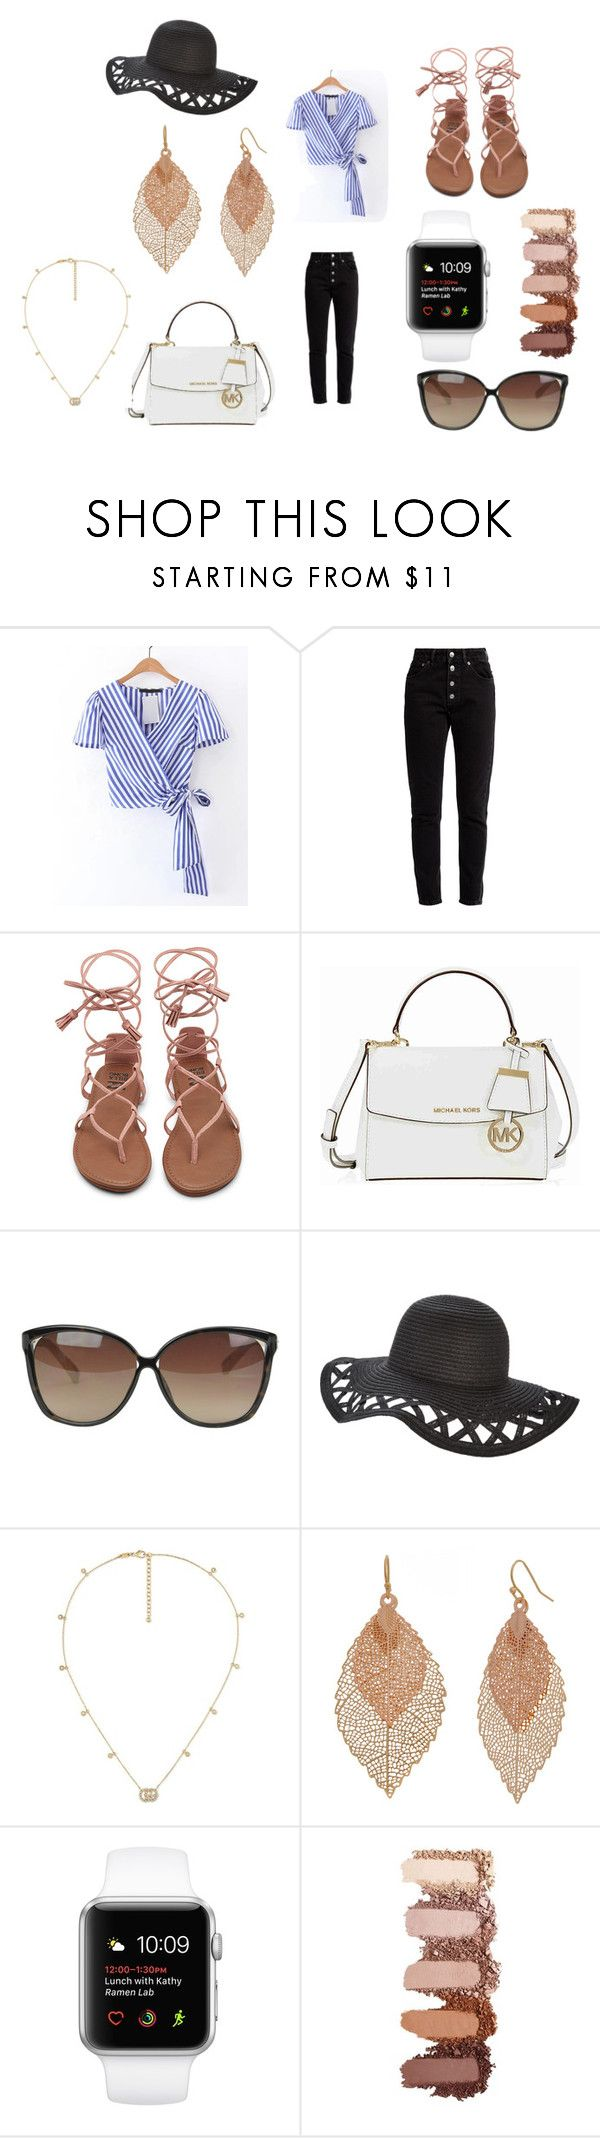 """""""Chic Spring Luncheon/ Outing Outfit"""" by peyton-doyle on Polyvore featuring Balenciaga, Michael Kors, Linda Farrow, Gucci and Bold Elements"""